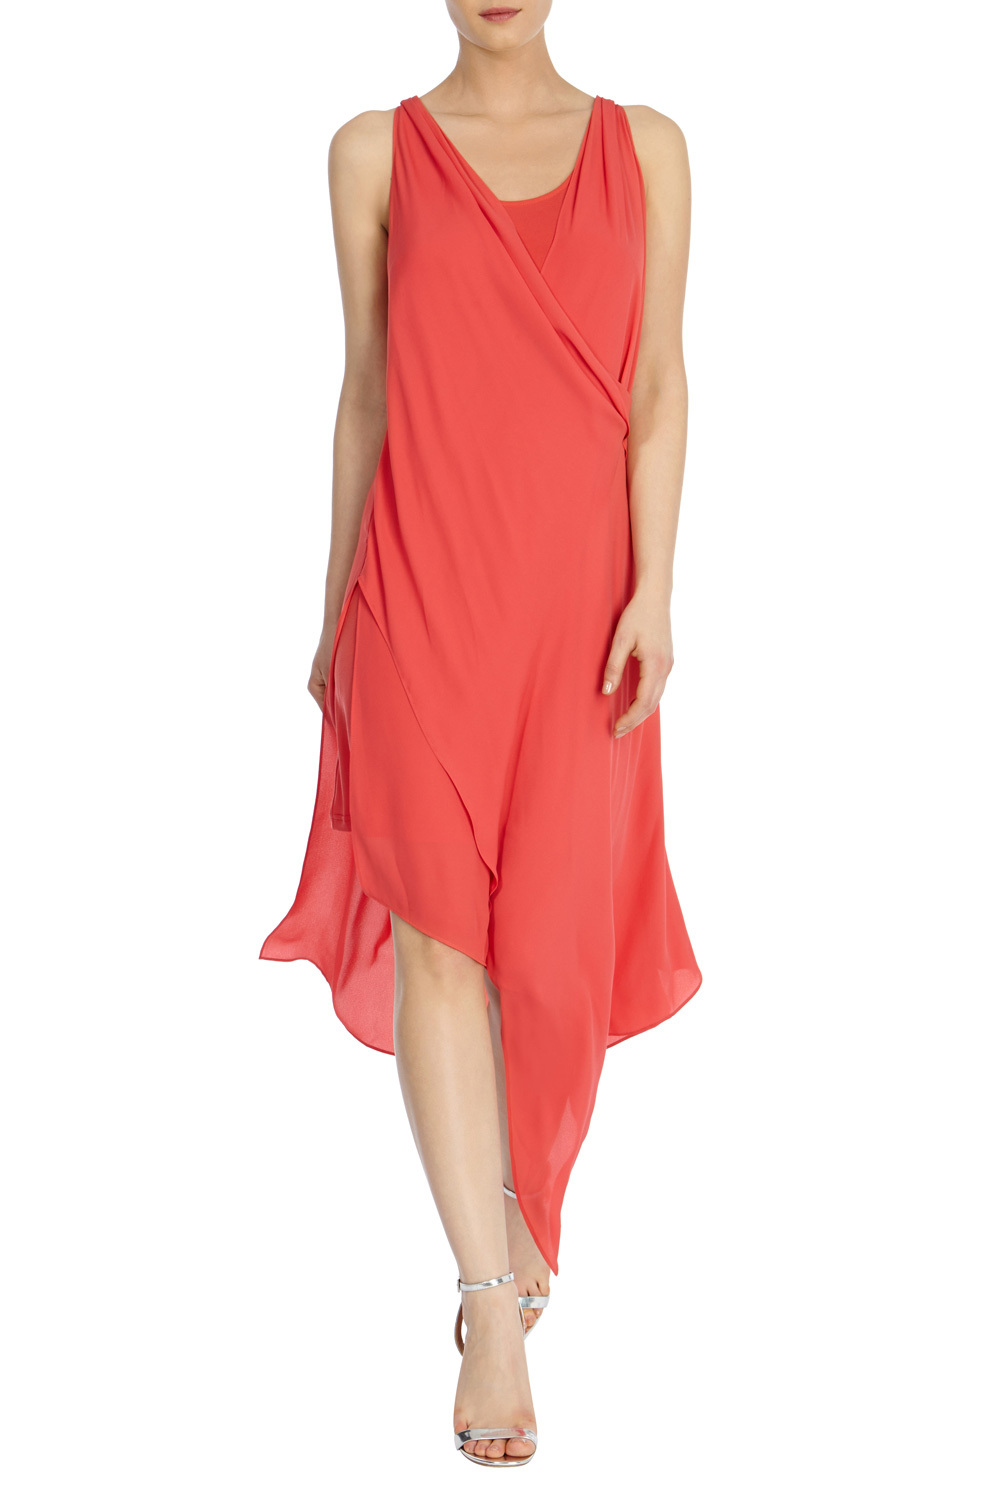 Elba Drape Dress - pattern: plain; sleeve style: sleeveless; bust detail: subtle bust detail; predominant colour: coral; length: on the knee; fit: soft a-line; style: asymmetric (hem); neckline: scoop; fibres: silk - 100%; occasions: occasion; hip detail: subtle/flattering hip detail; sleeve length: sleeveless; texture group: sheer fabrics/chiffon/organza etc.; pattern type: fabric; season: s/s 2016; wardrobe: event